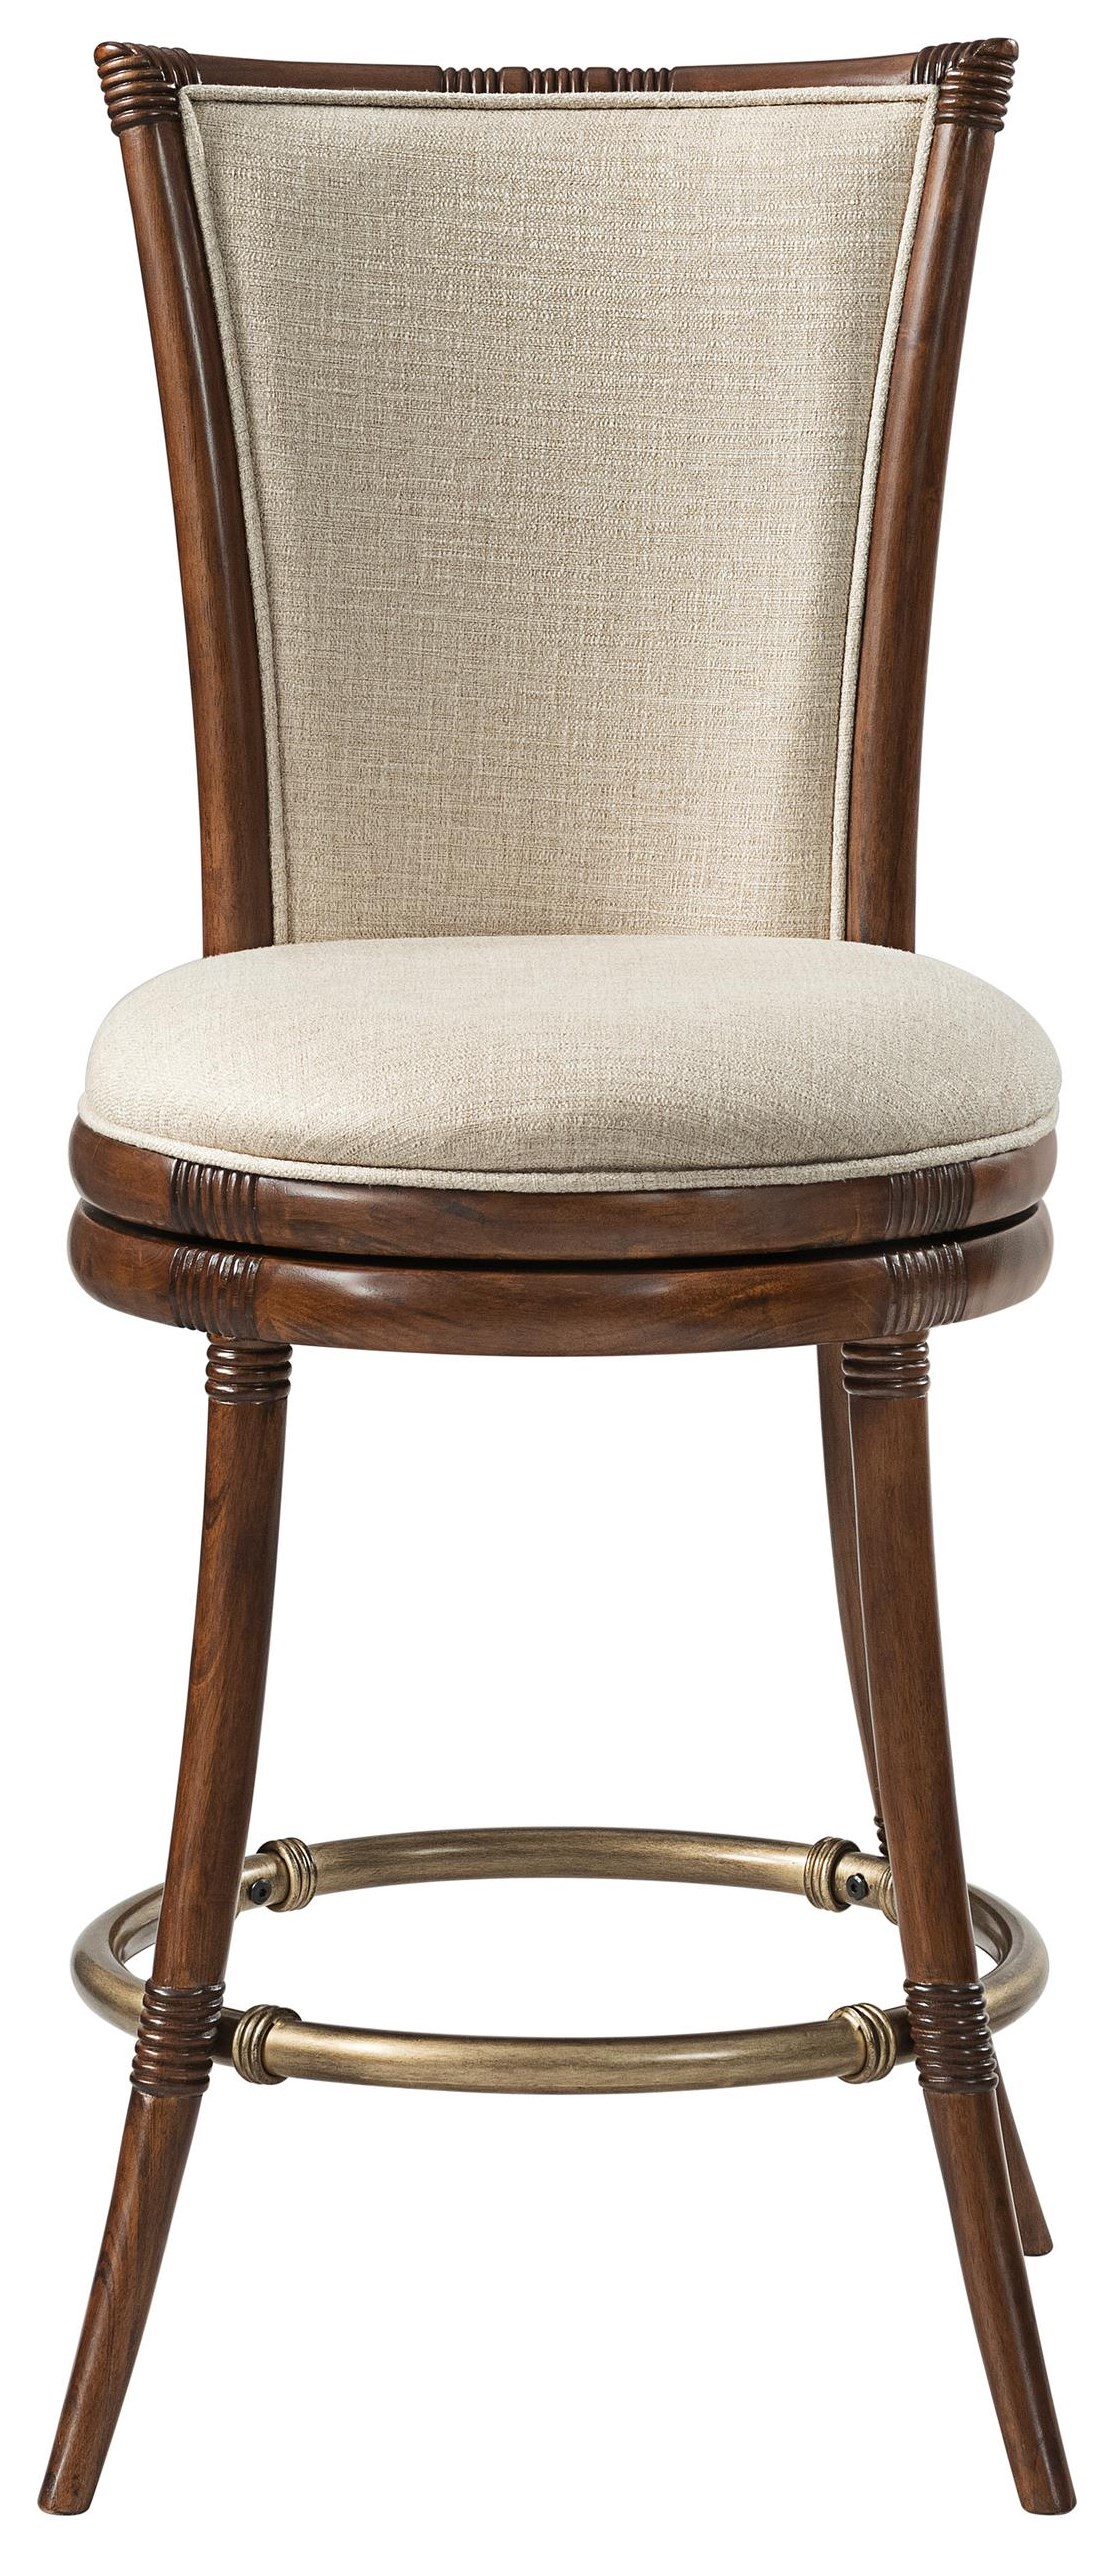 Tropical Breeze Upholstered Counter Stool by Stillwater Furniture at Baer's Furniture